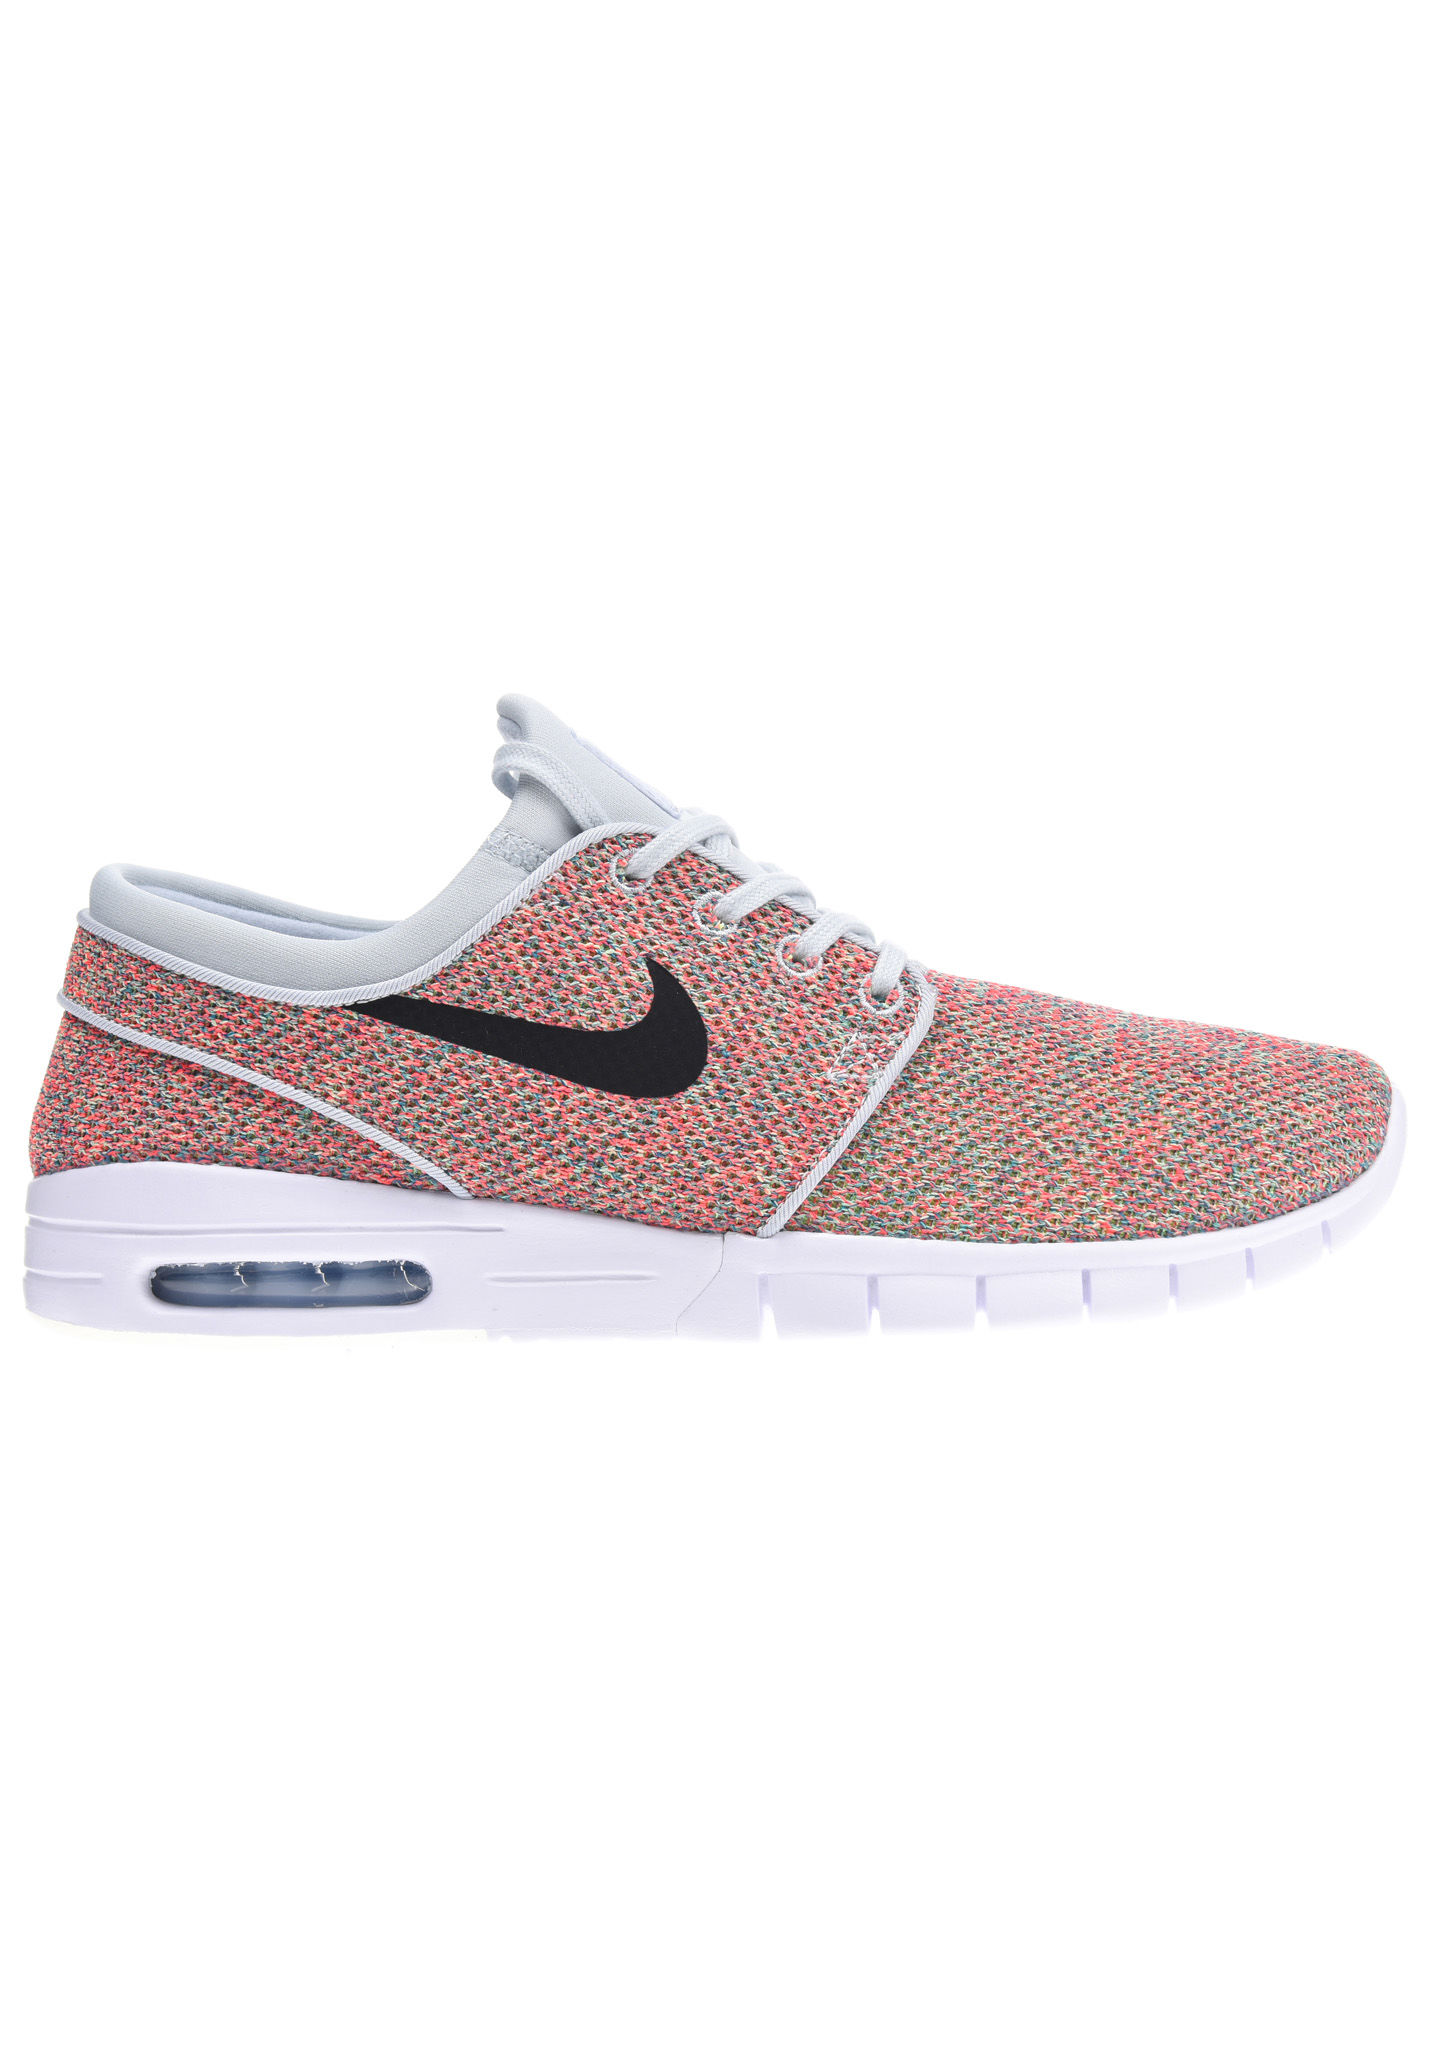 buy popular cf9a1 8bcfe NIKE SB Stefan Janoski Max - Sneakers for Men - Red - Planet